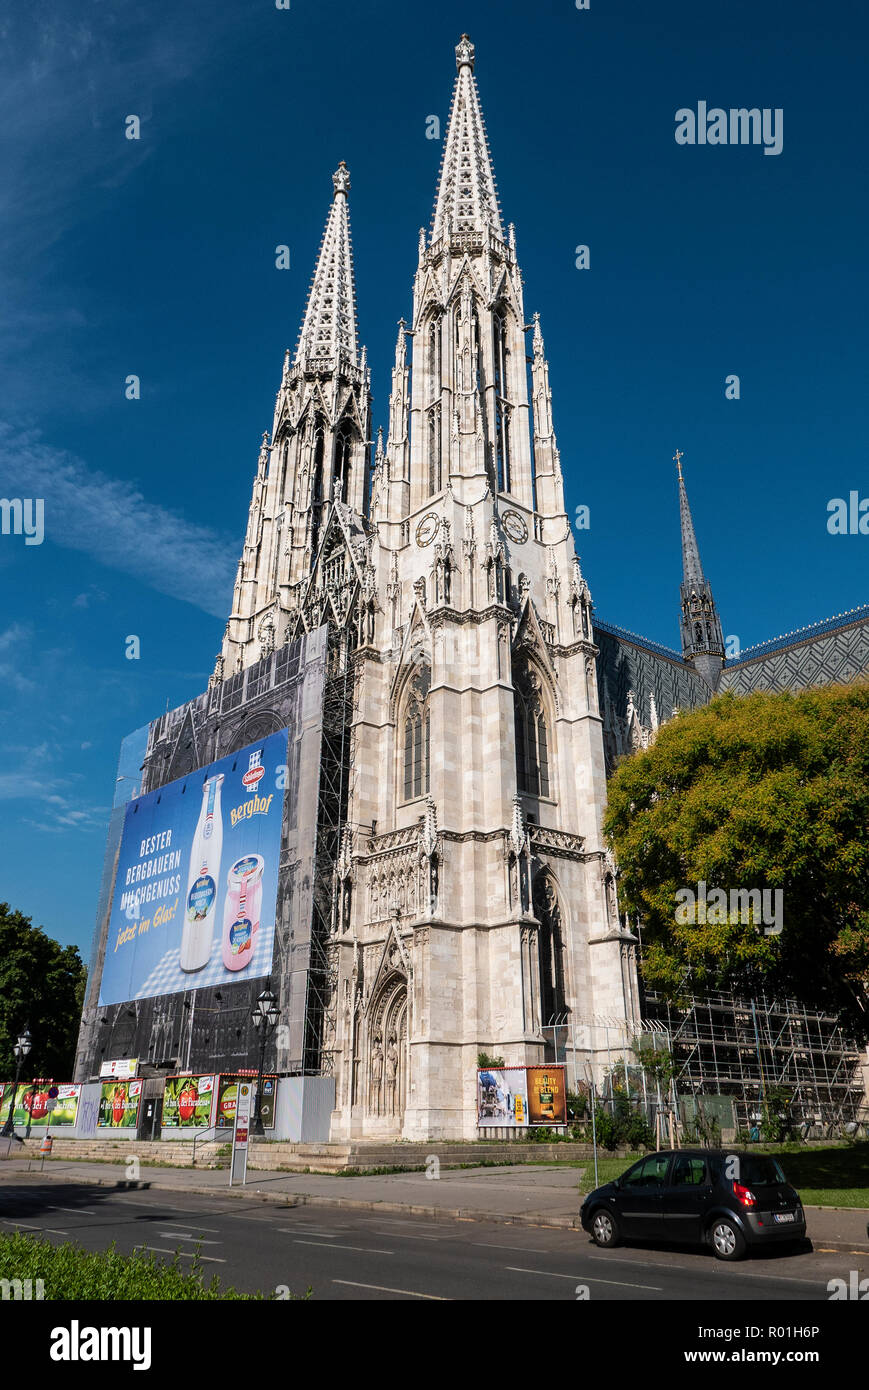 Votivkirche in Vienna turned billboard, an eyesore that lessens the city's readability and reveals dysfunctional local authorities. How dare they? - Stock Image